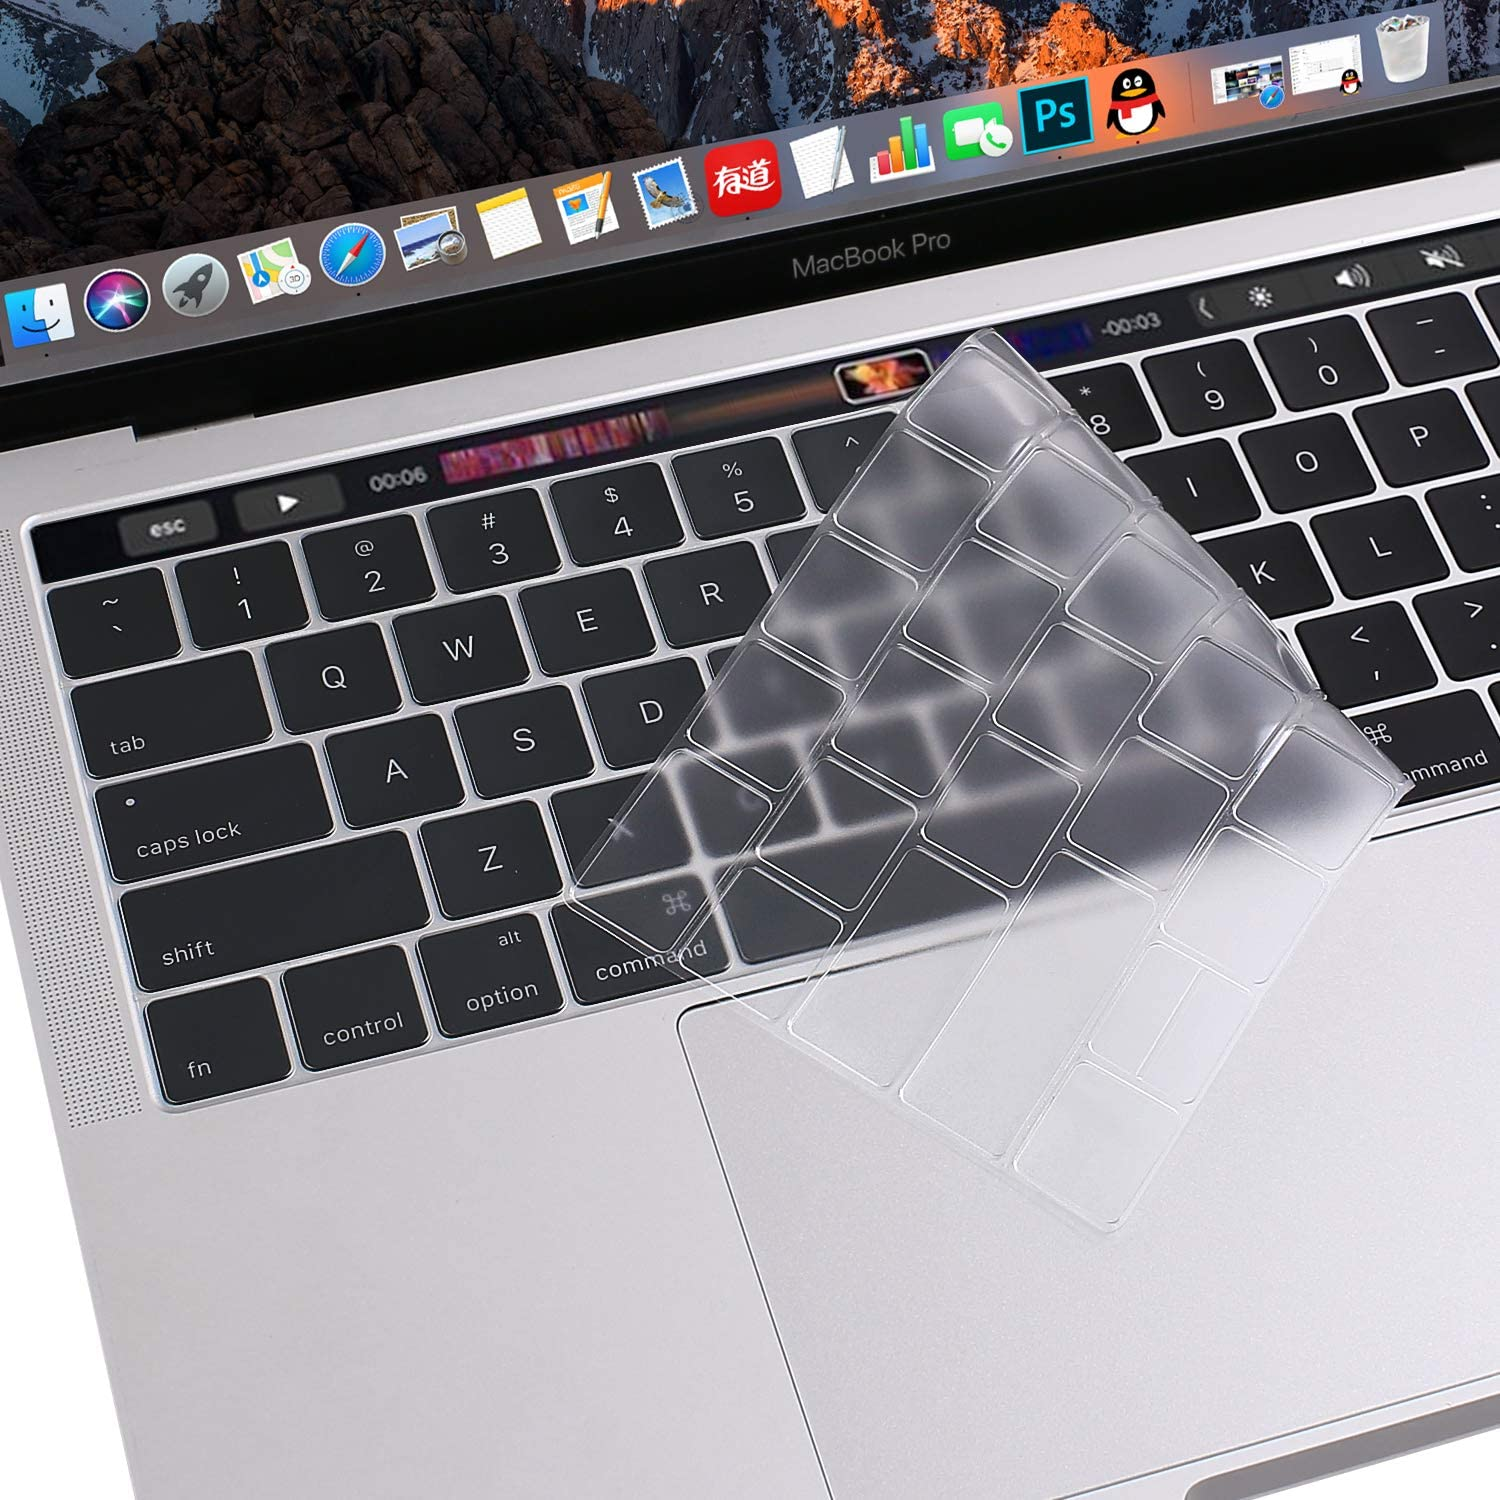 MOSISO Premium Ultra Thin TPU Keyboard Cover Compatible with MacBook Pro with Touch Bar 13 and 15 inch 2019 2018 2017 2016 (Model: A2159, A1989, A1990, A1706, A1707) Transparent Skin, Clear